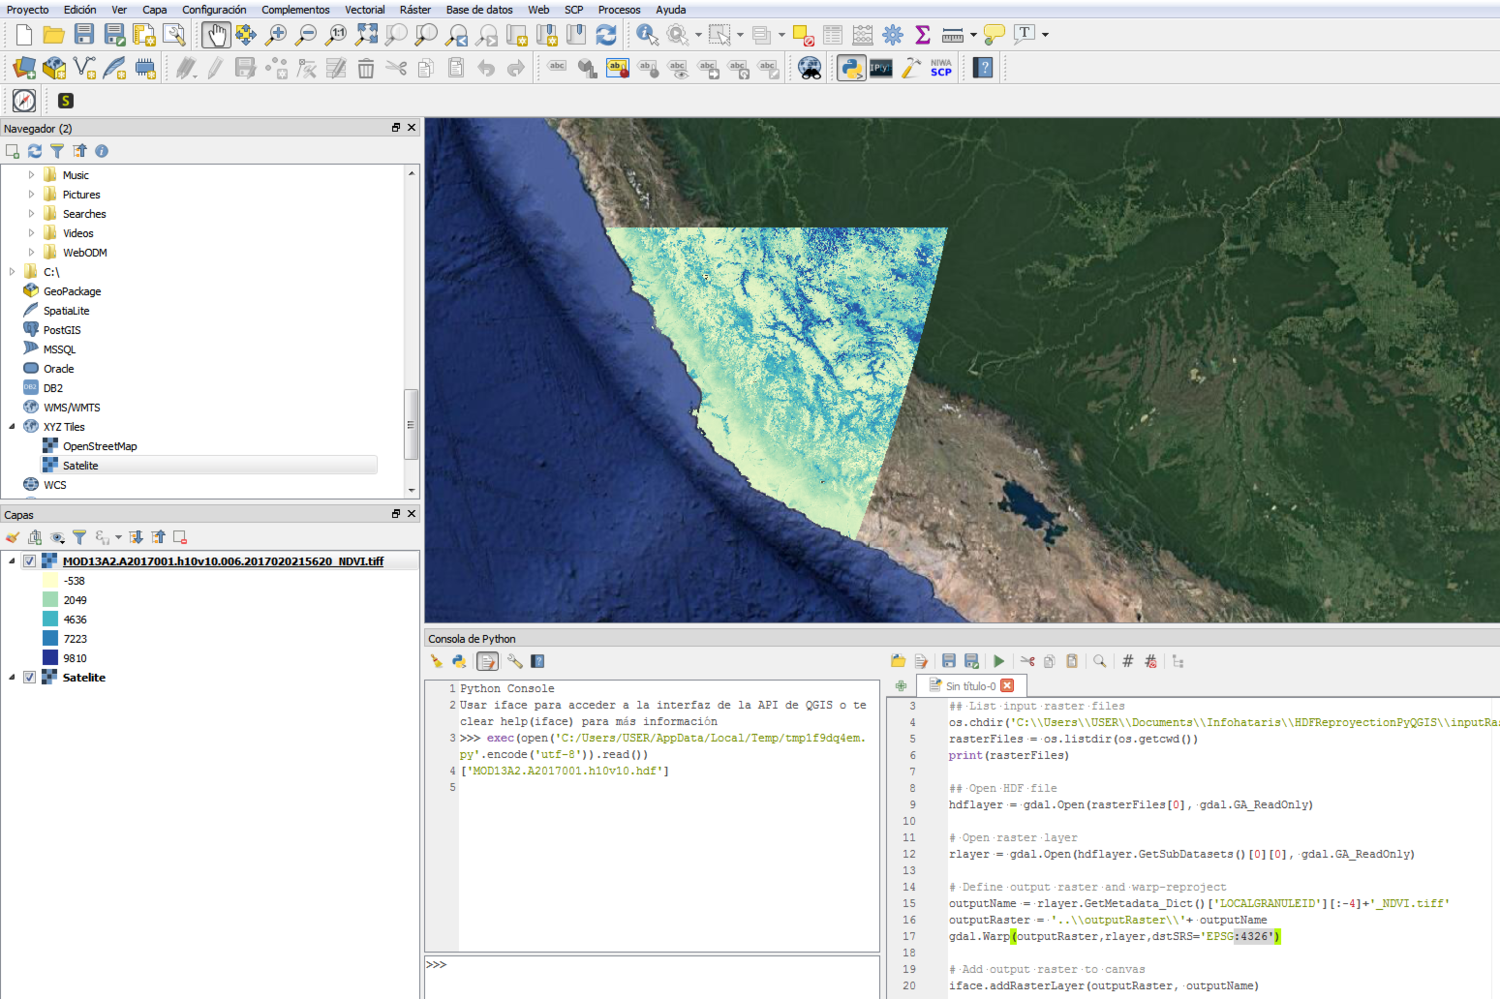 How to open HDF files on Sinusoidal Coordinate System in QGIS3 with